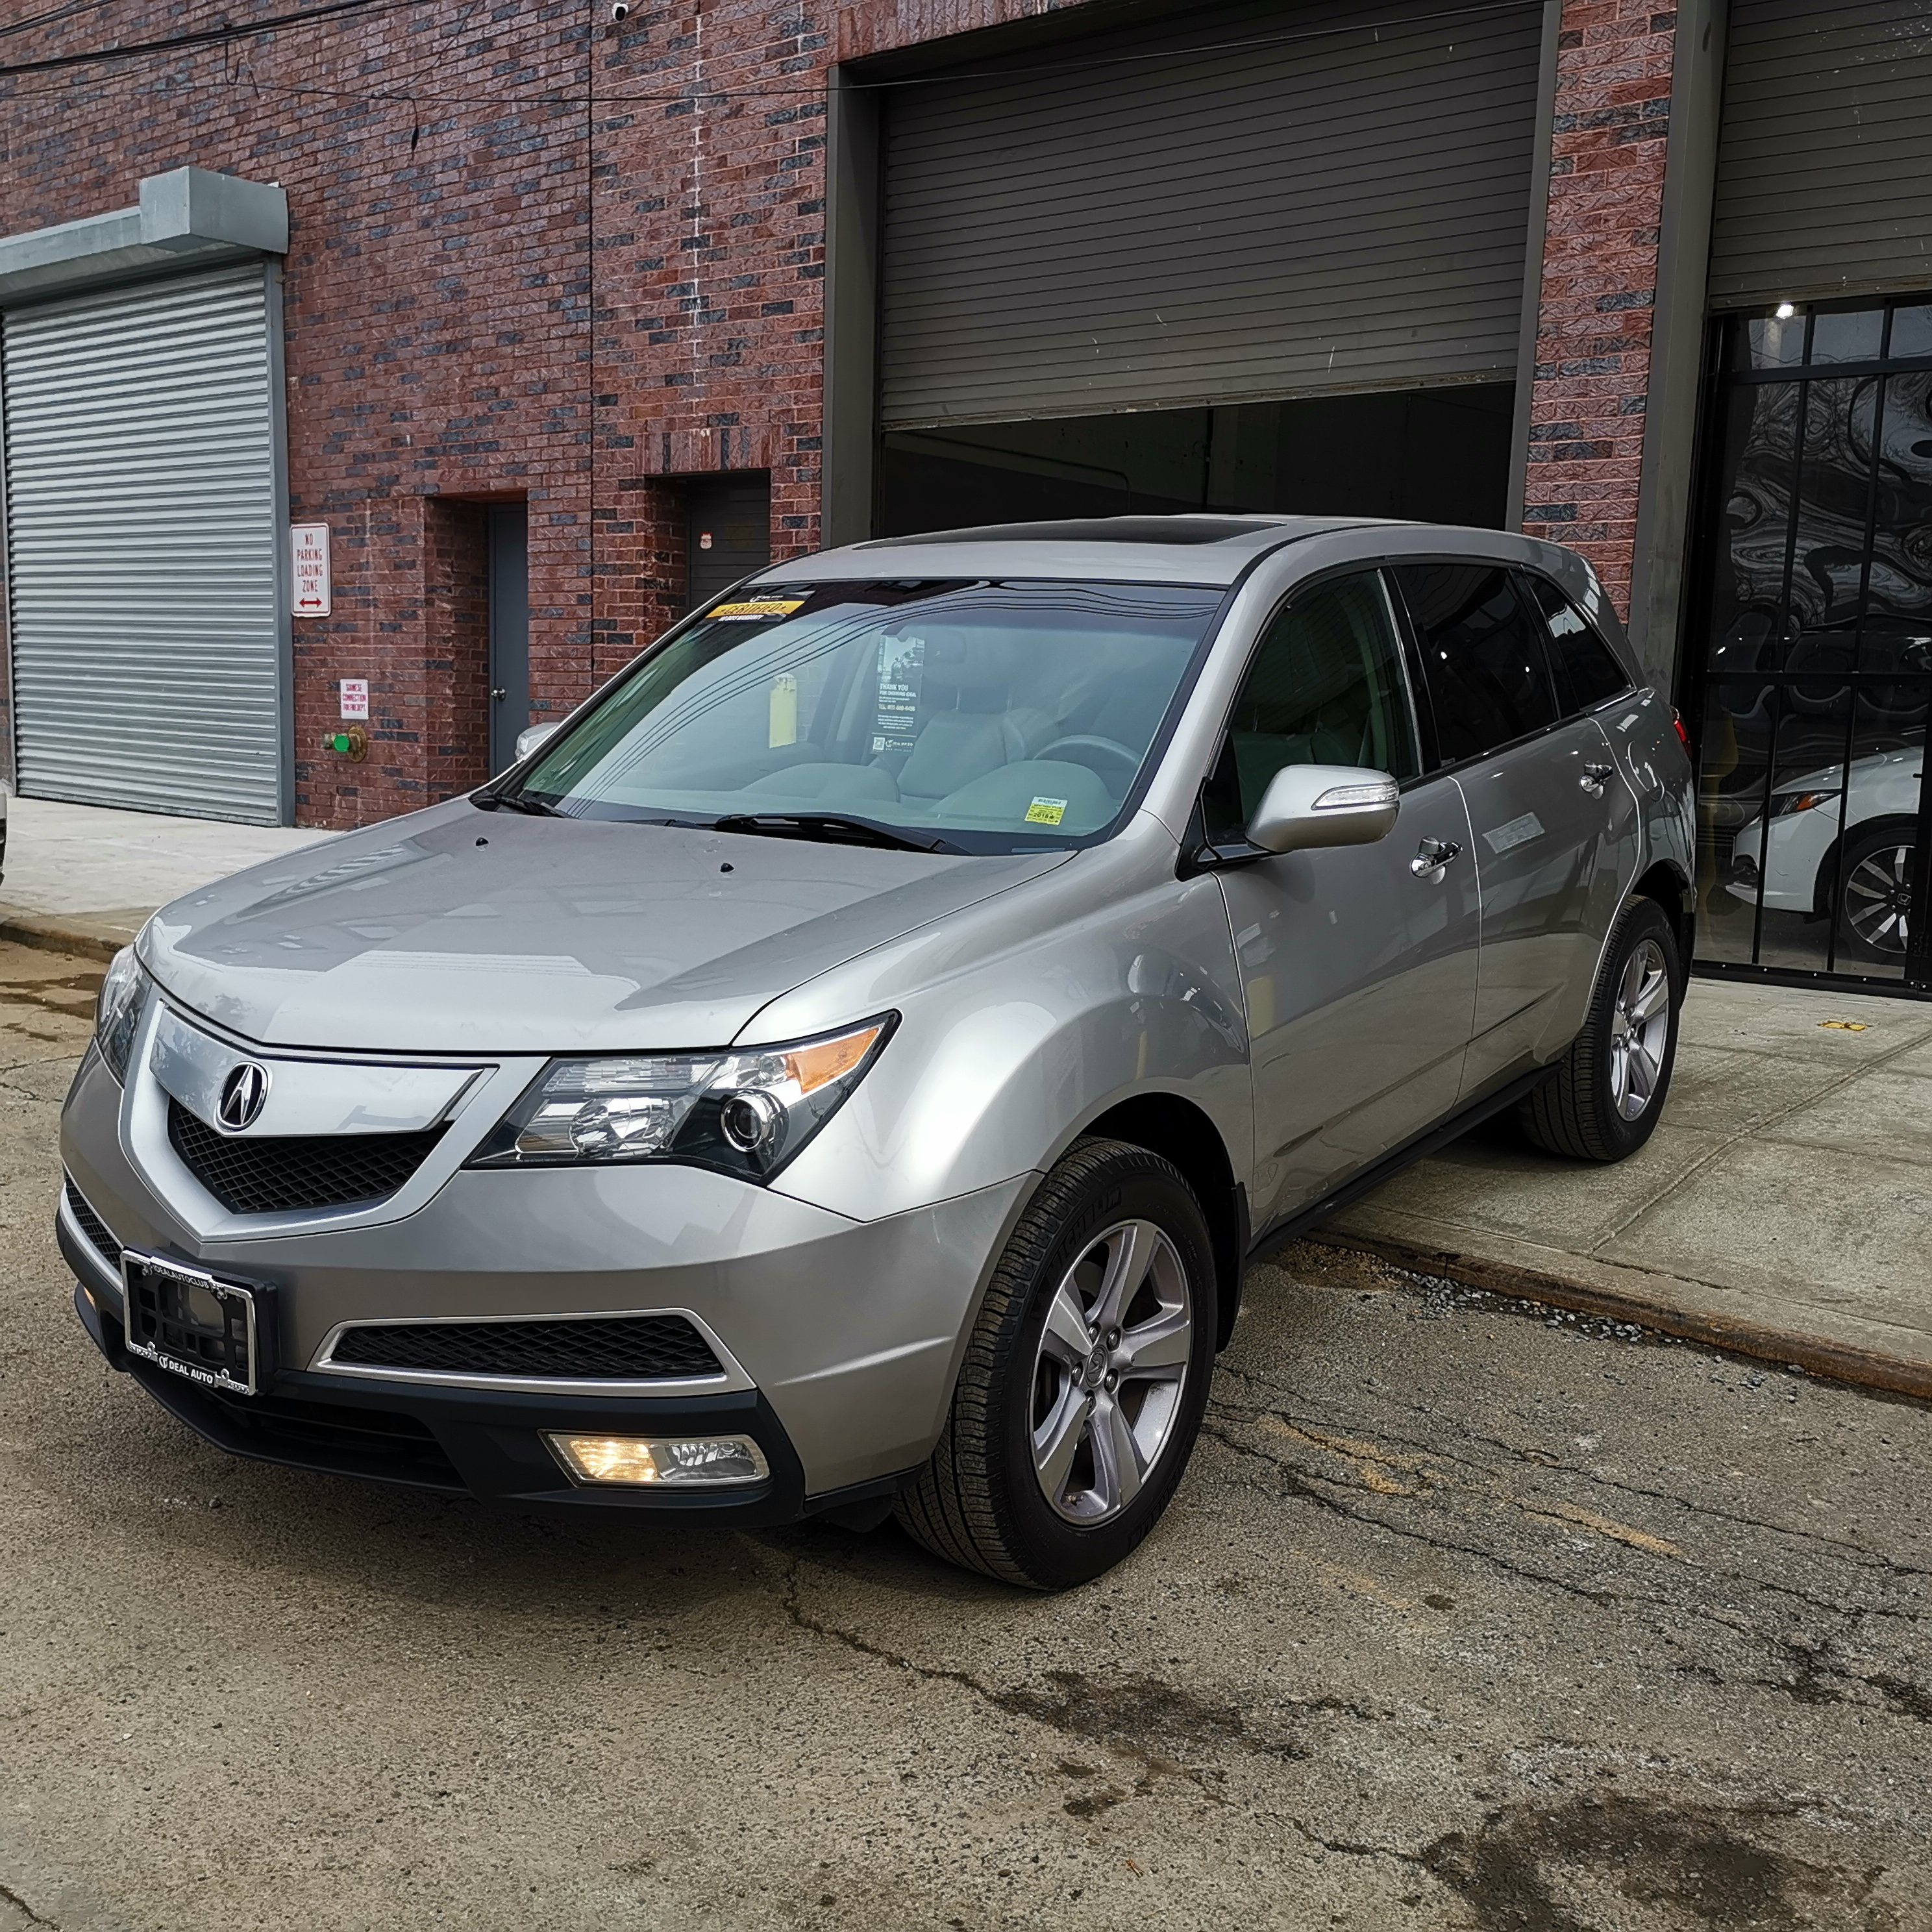 2013 ACURA MDX 6-SPD AT W/TECH PACKAGE GRAY/BLACK 89K